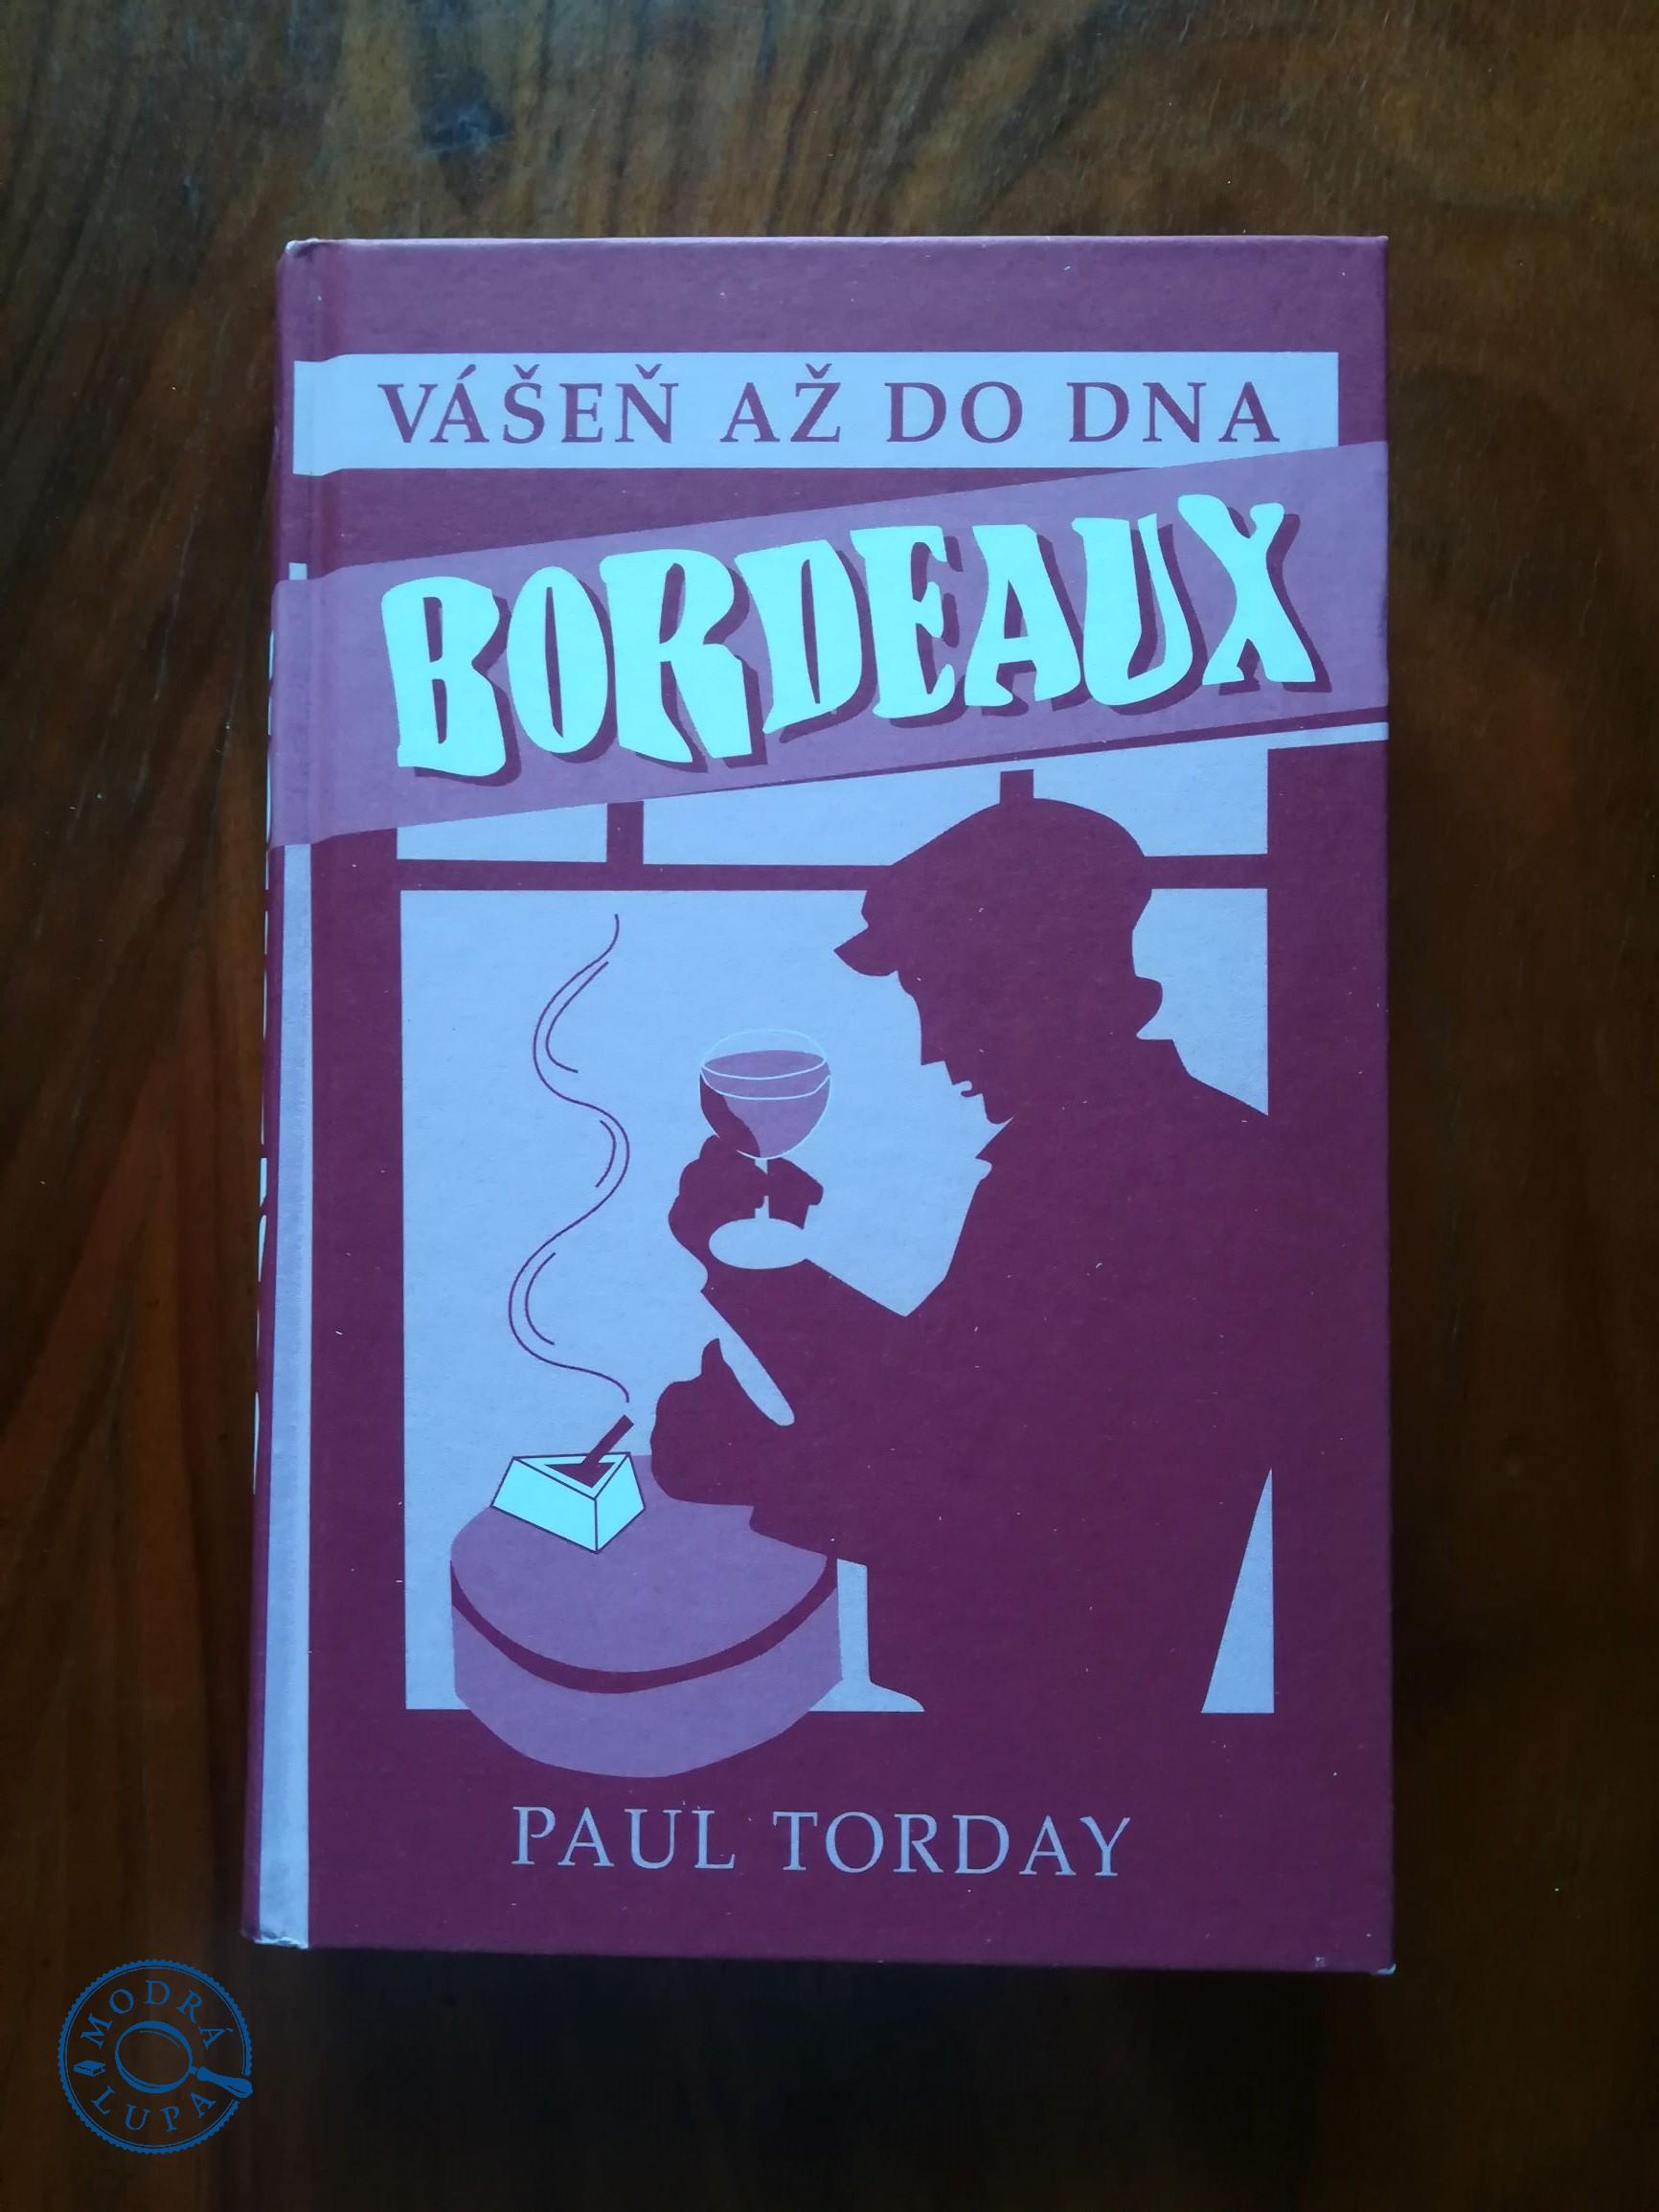 PAUL TORDAY – BORDEAUX, Vášeň až do dna